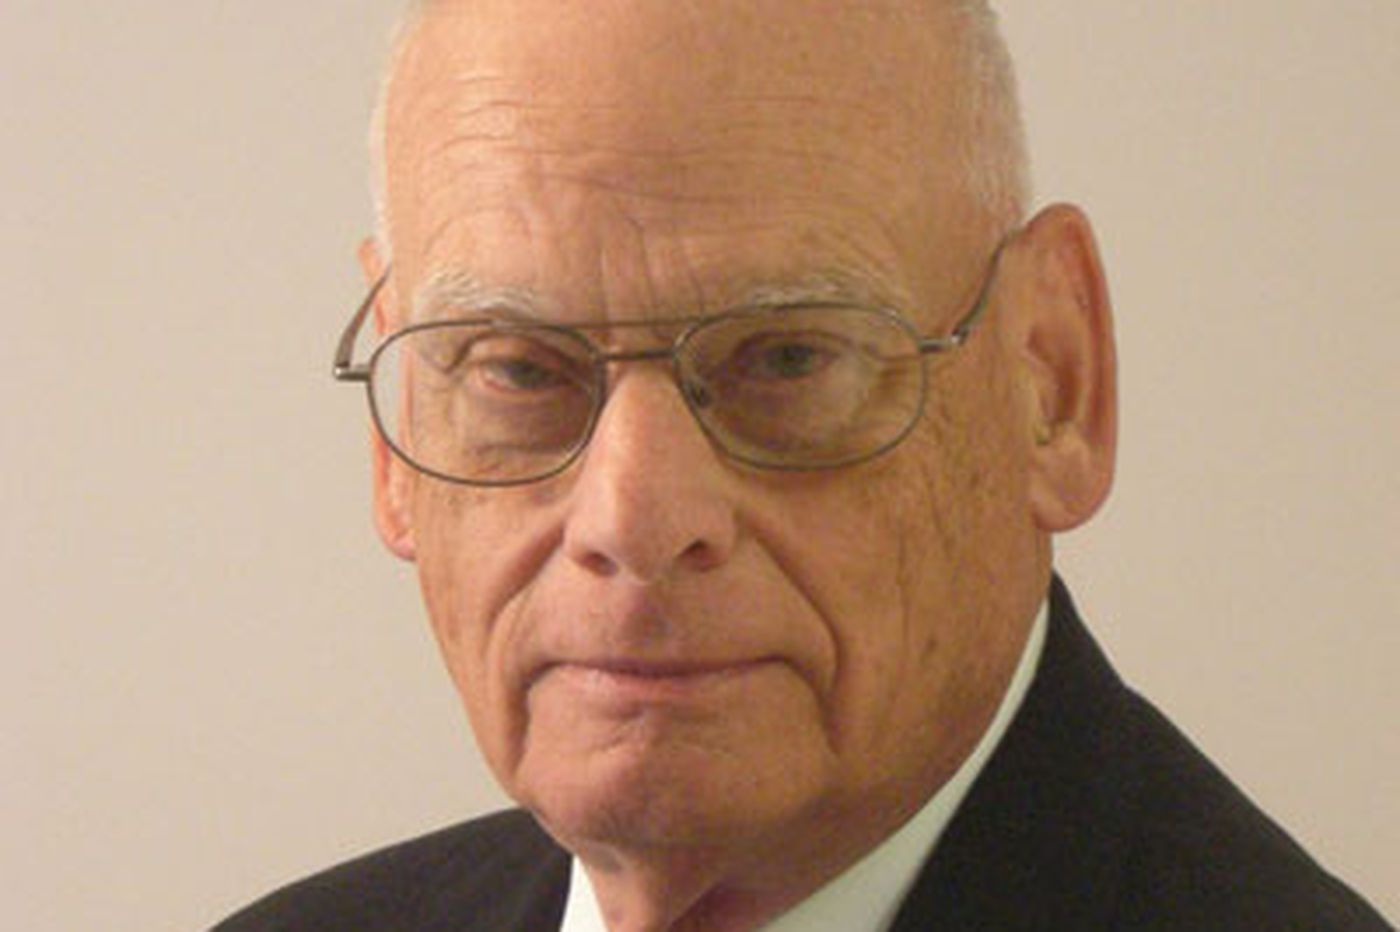 Jack W. Boorse, 78, traffic engineer